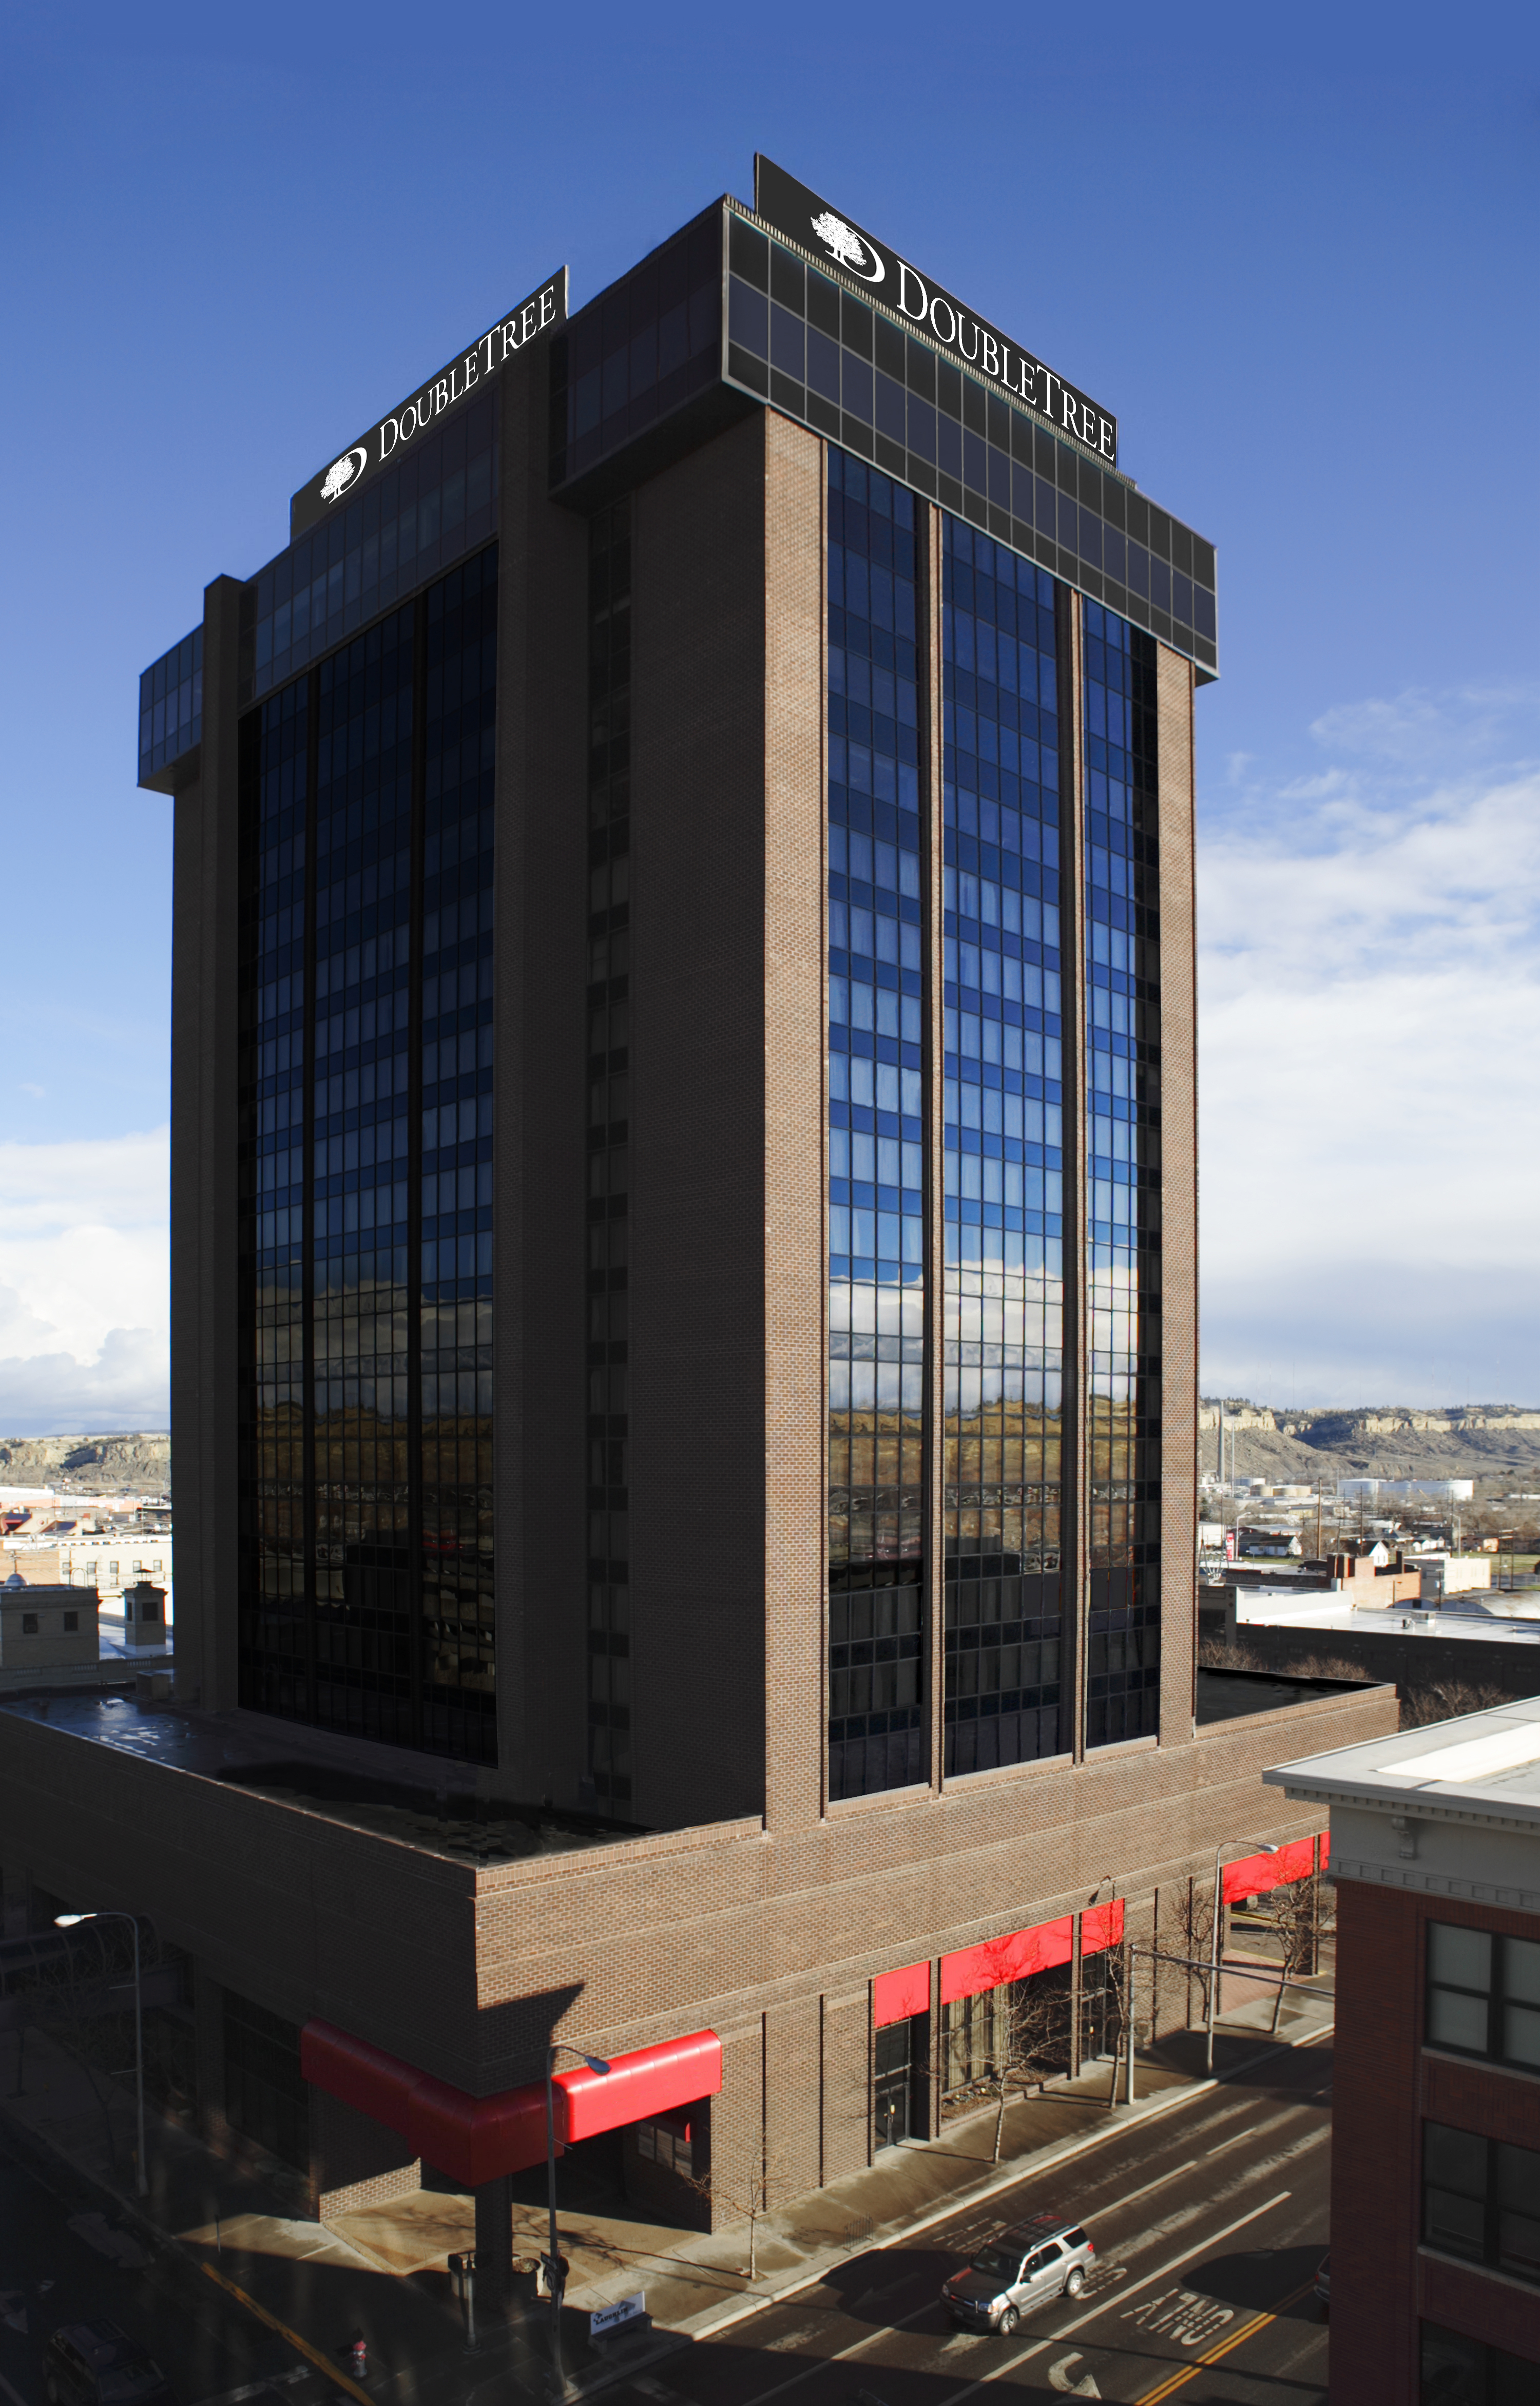 DoubleTree By Hilton Opens Its First Hotel In Montanau0027s Largest City |  Business Wire